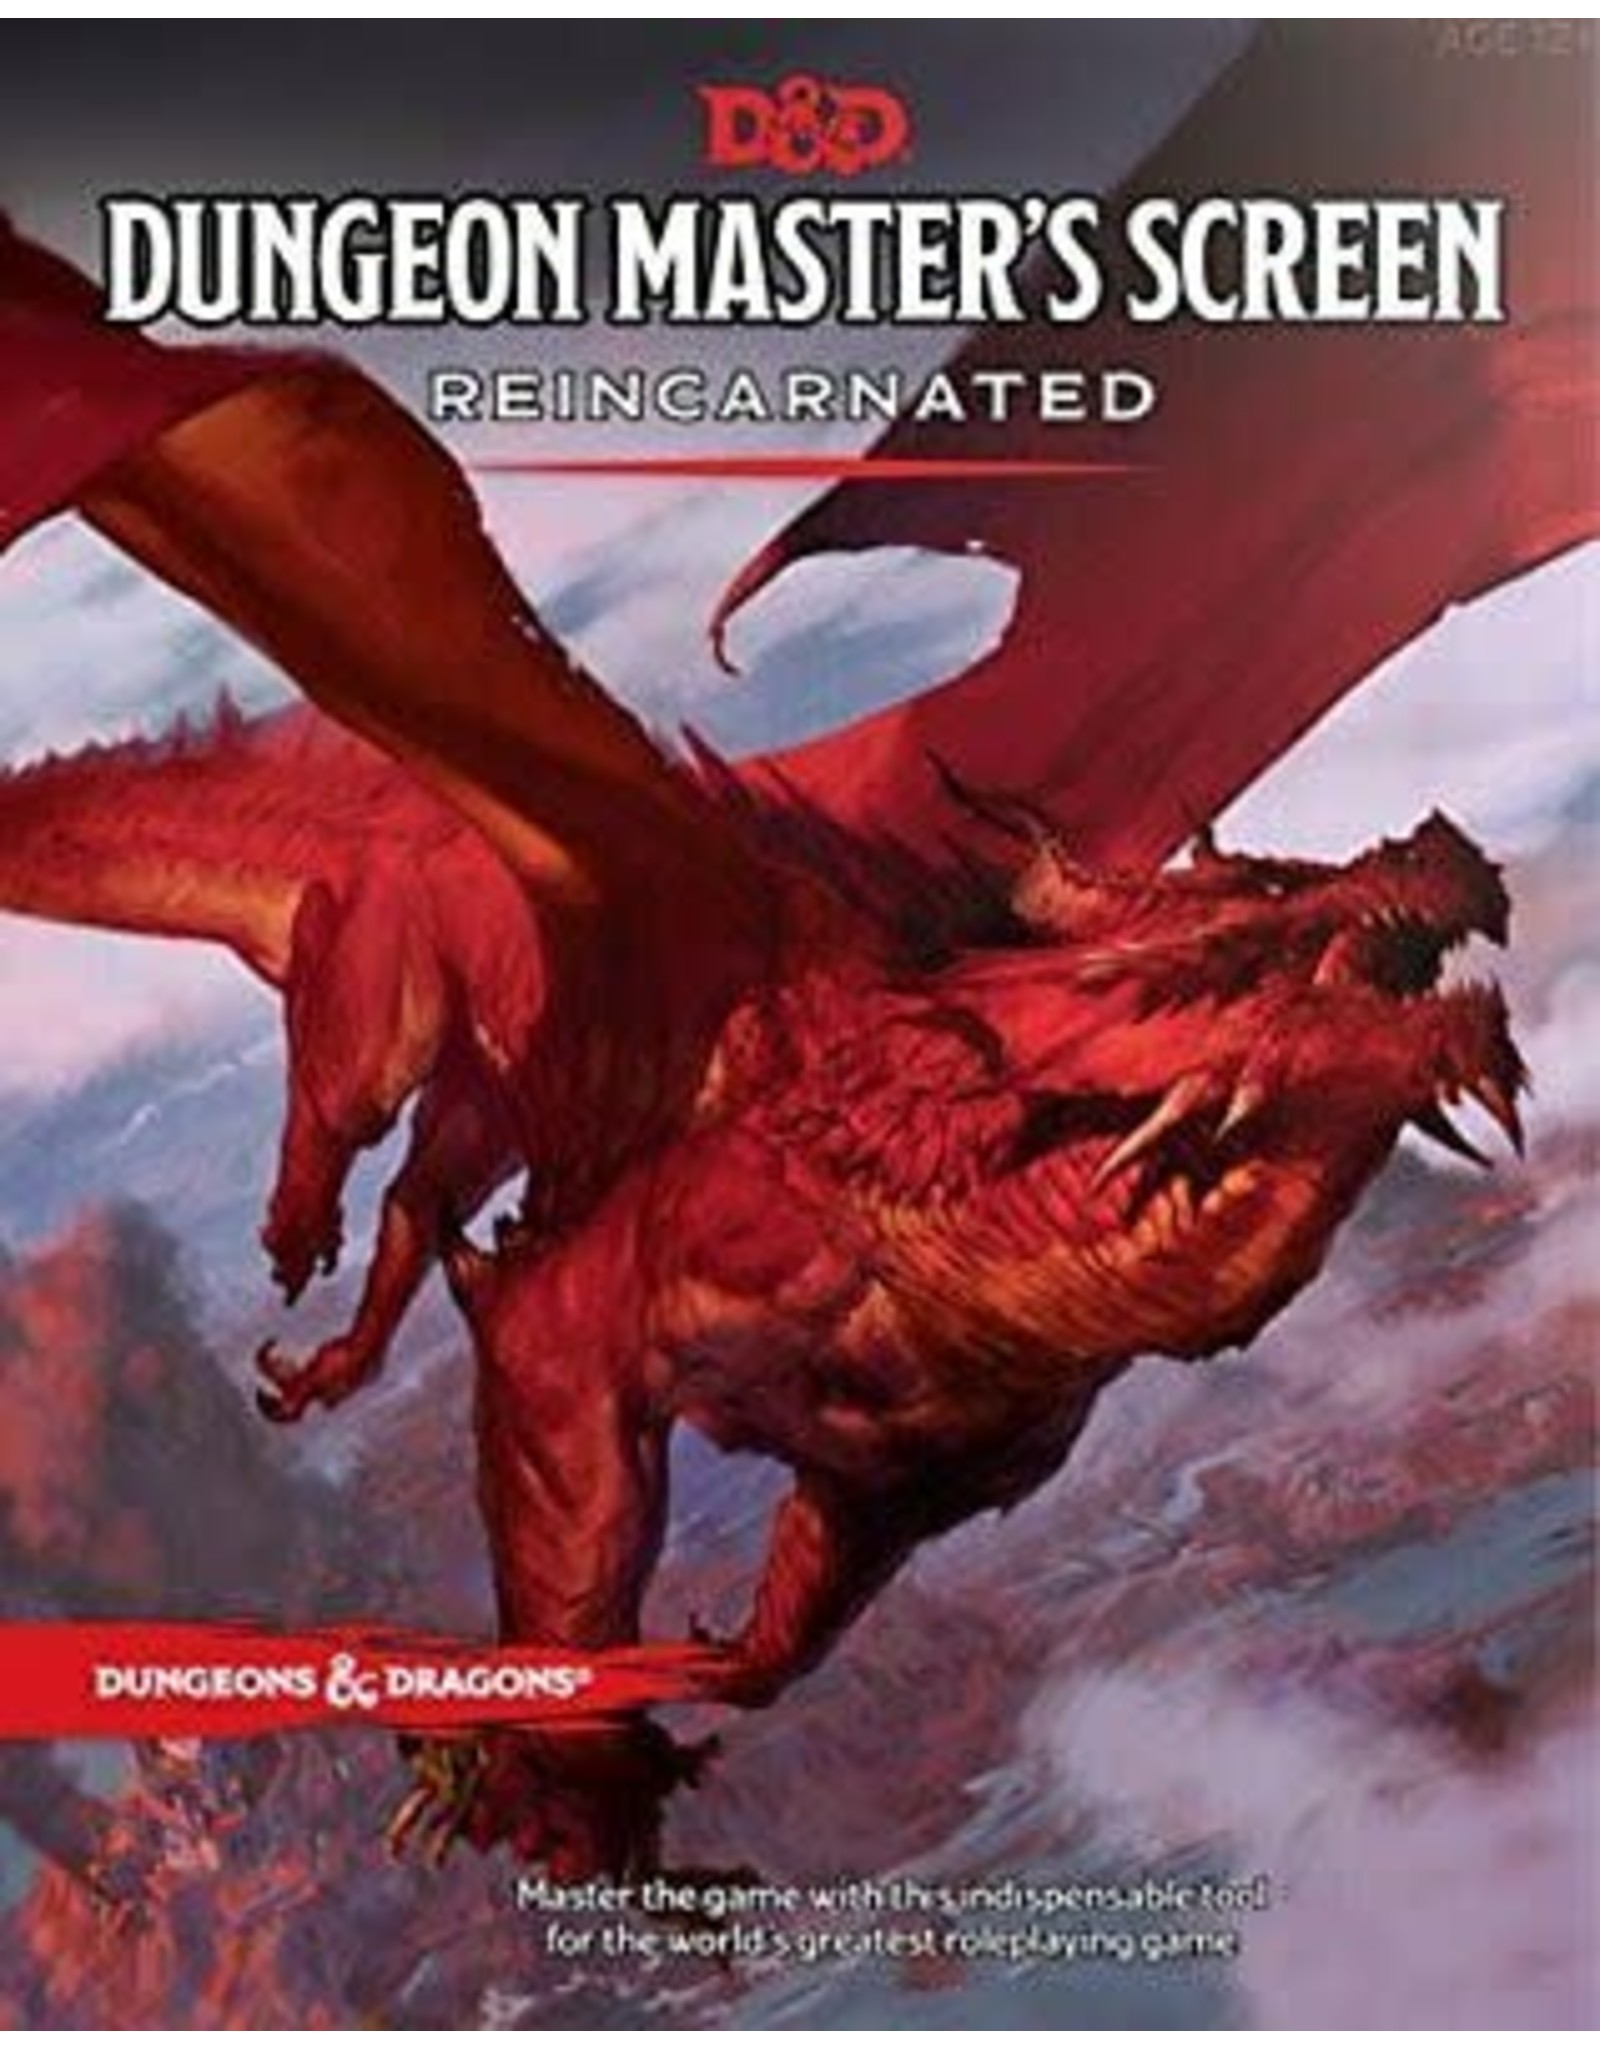 Wizards of the Coast DND DUNGEON MASTER'S SCREEN REINCARNATED